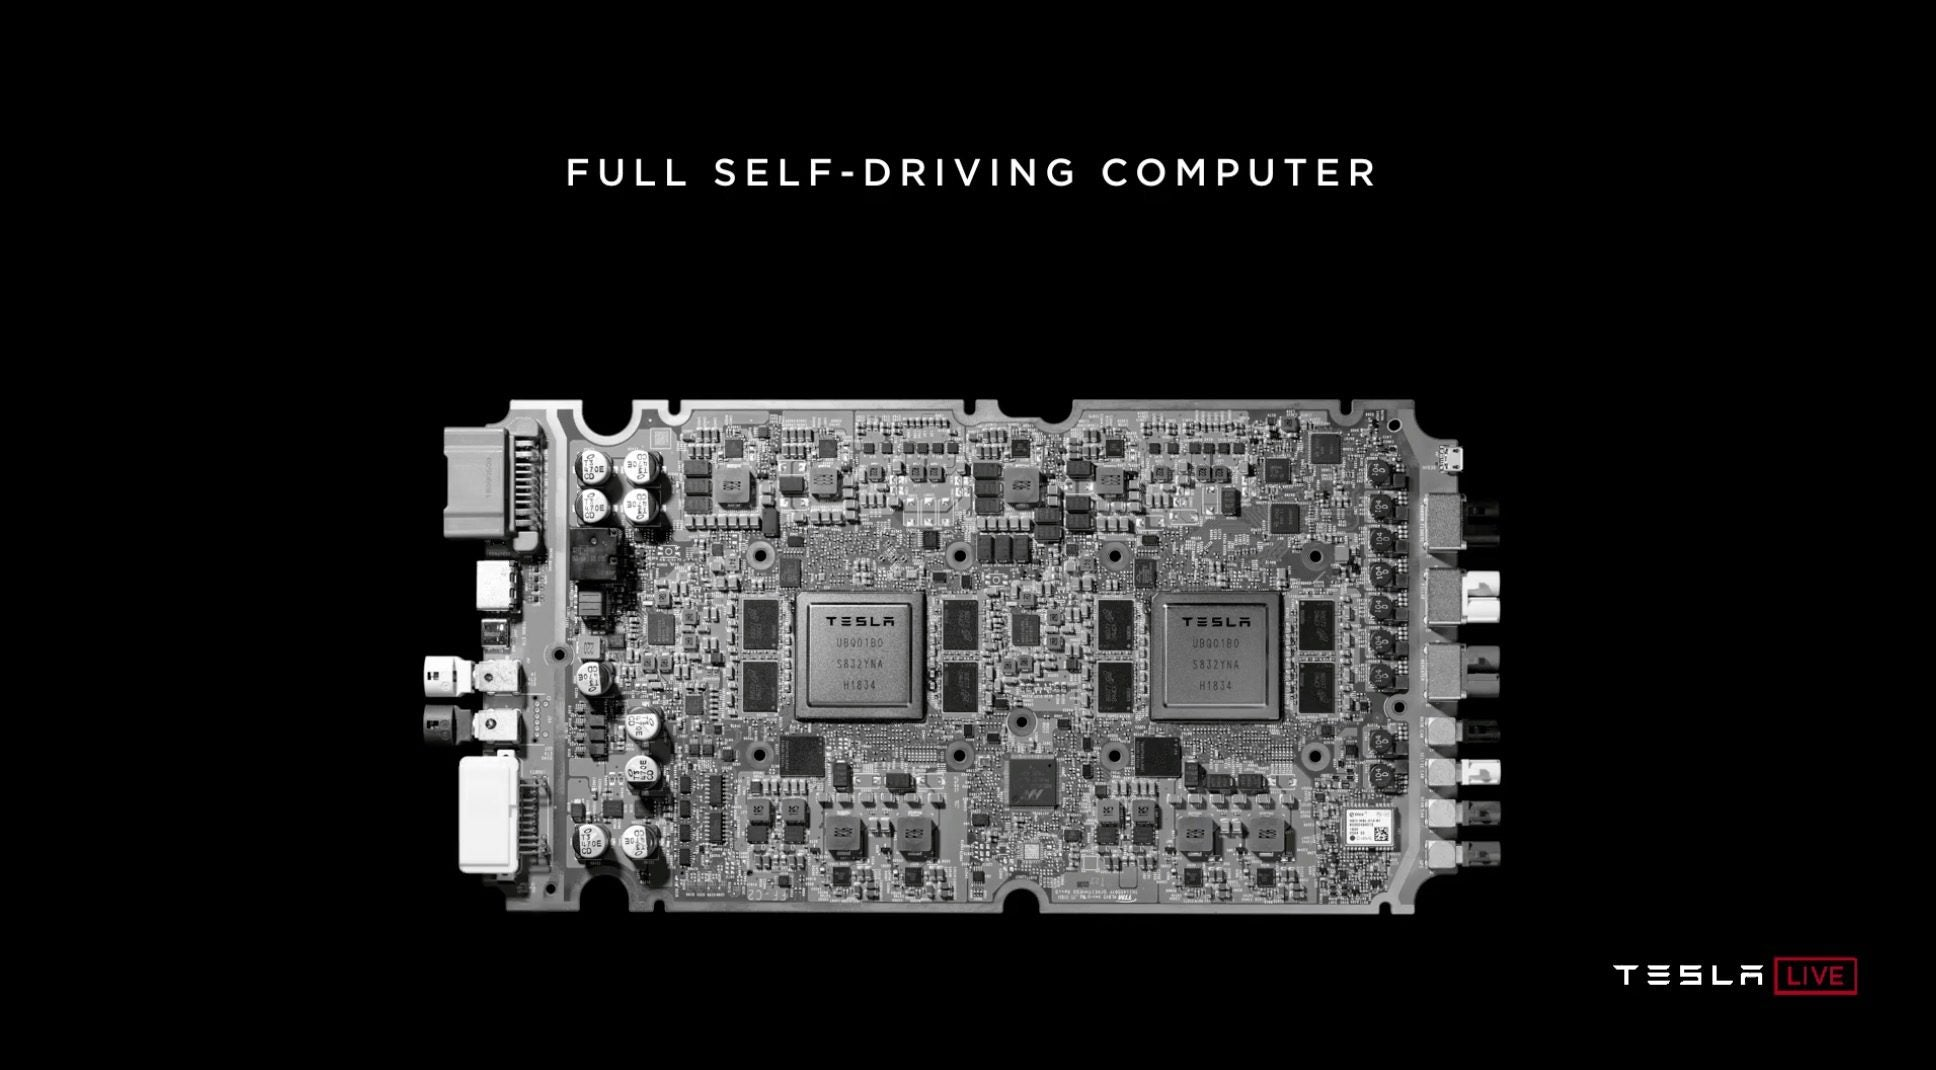 Elon Musk & Tesla Go it Alone to Create Autonomous Driving Chip, Here's Why